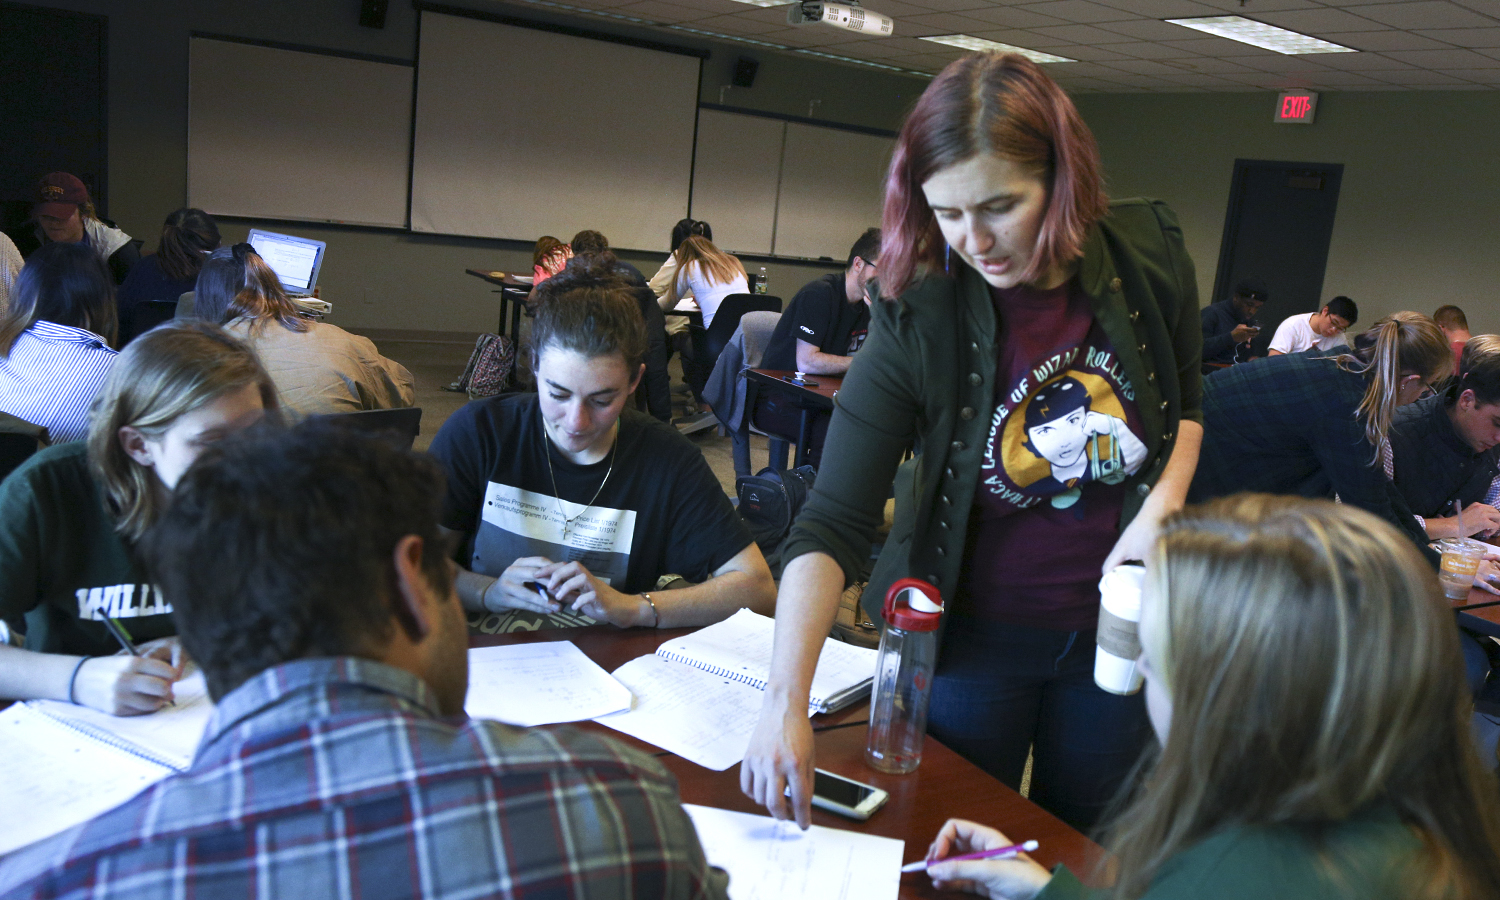 Assistant Professor of Mathematics and Computer Science Jennifer Biermann helps students with a problem set as part of âCalculus Iâ in Gulick Hall.